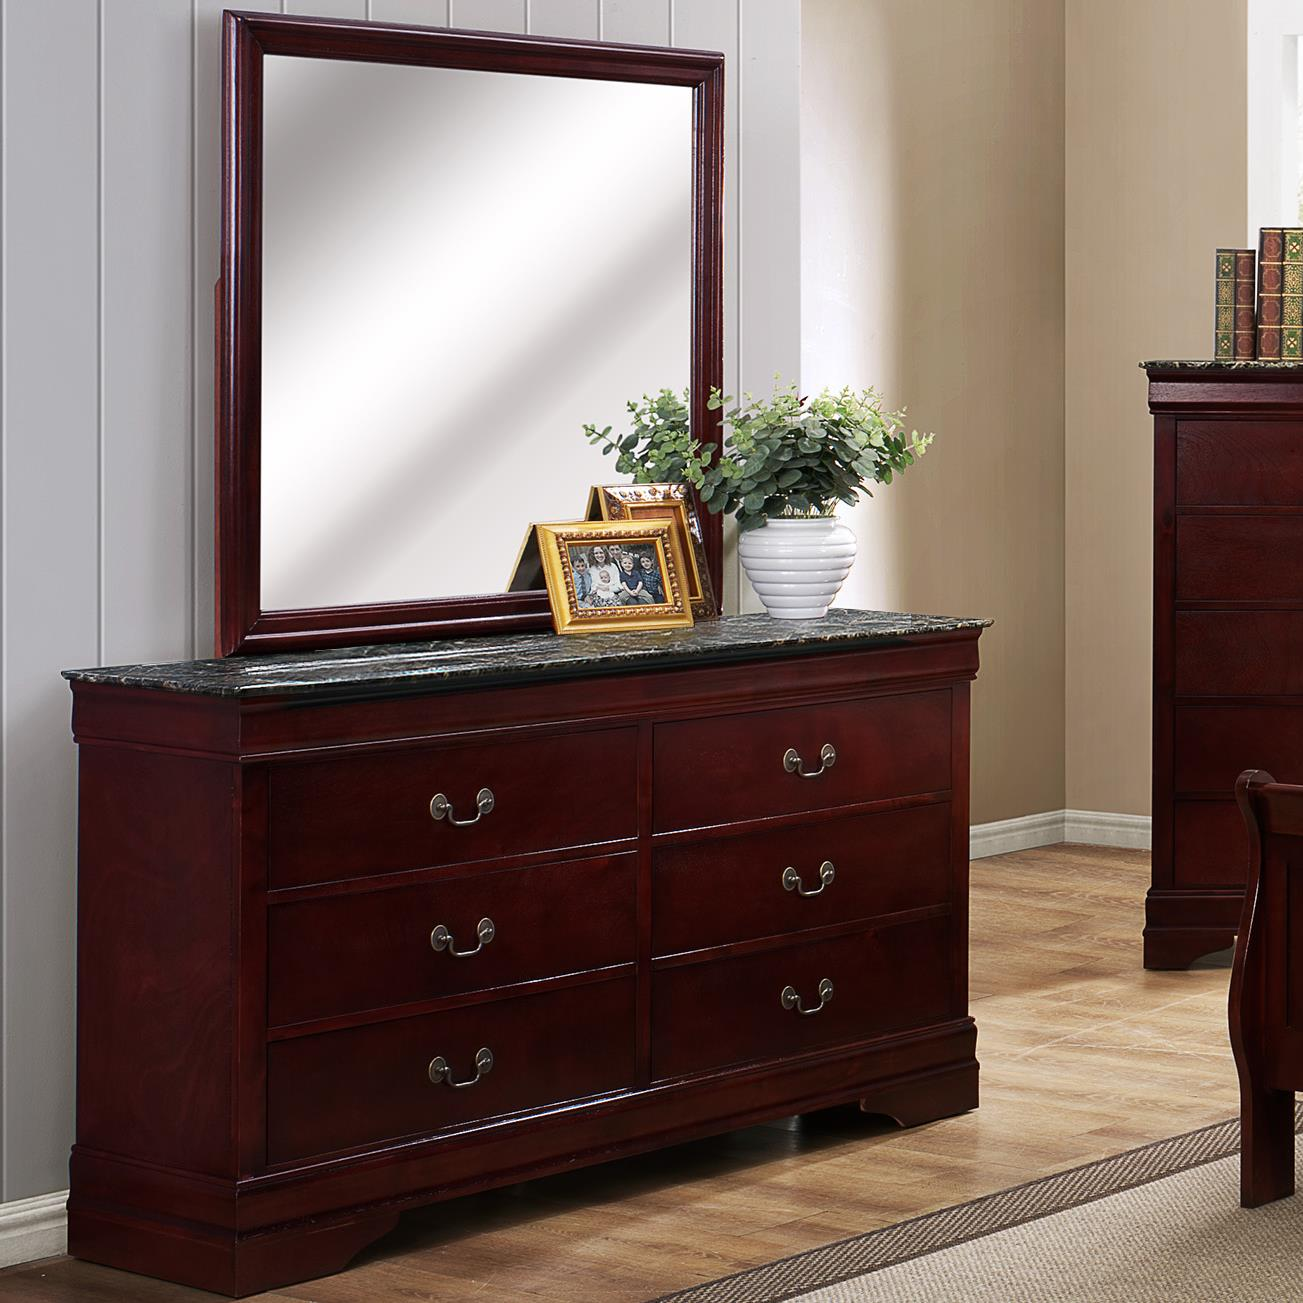 Crown Mark Louis Phillipe Dresser and Mirror Set - Item Number: B3888-1MBL+11MBL